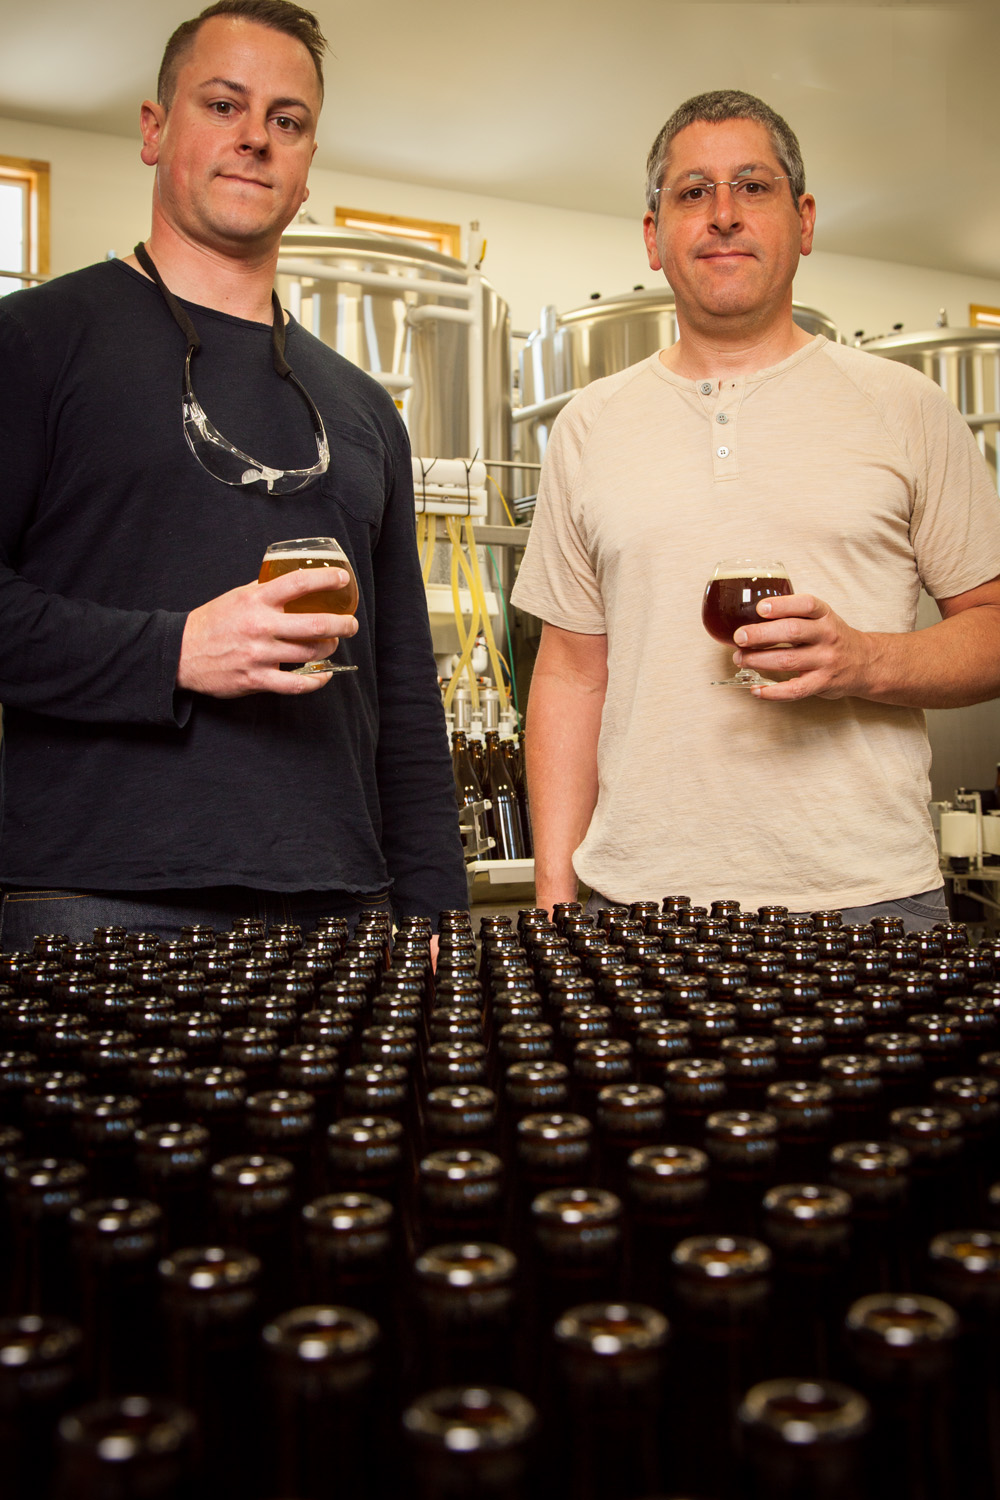 Dan and David Kleban Owners Maine Beer Co. Freeport, ME Established in 2000